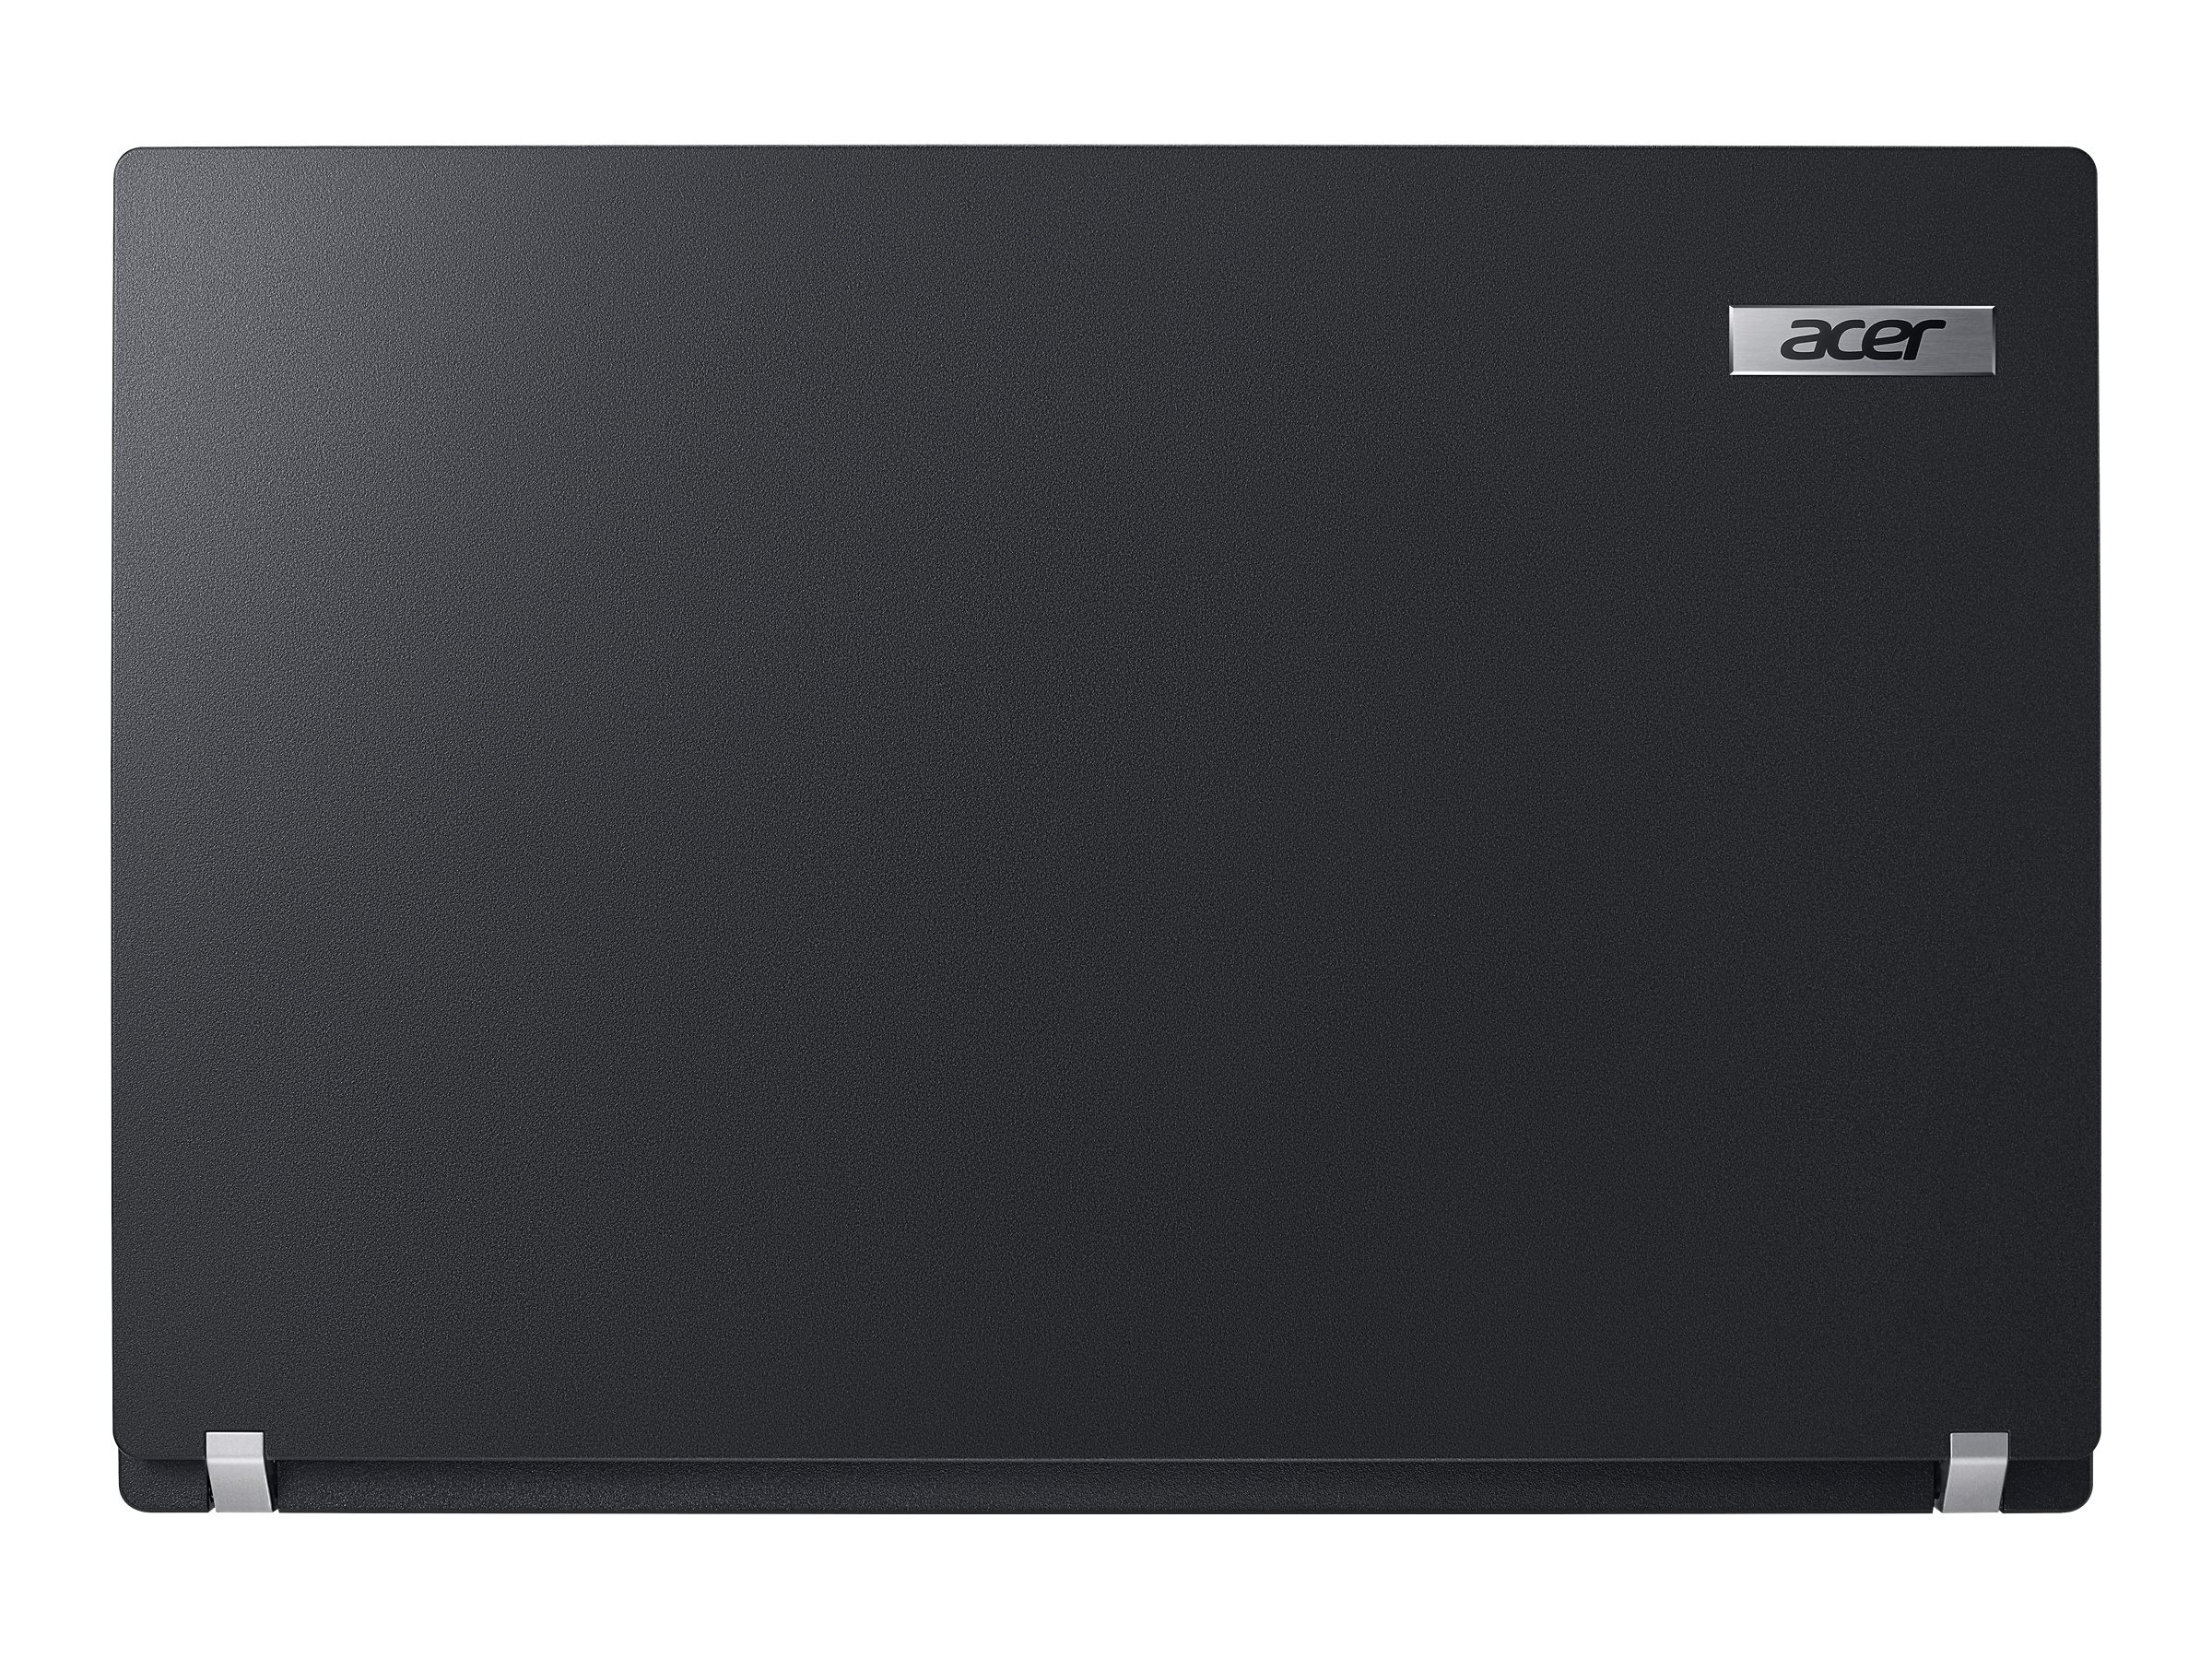 Acer NX.VDKAA.009 Image 4